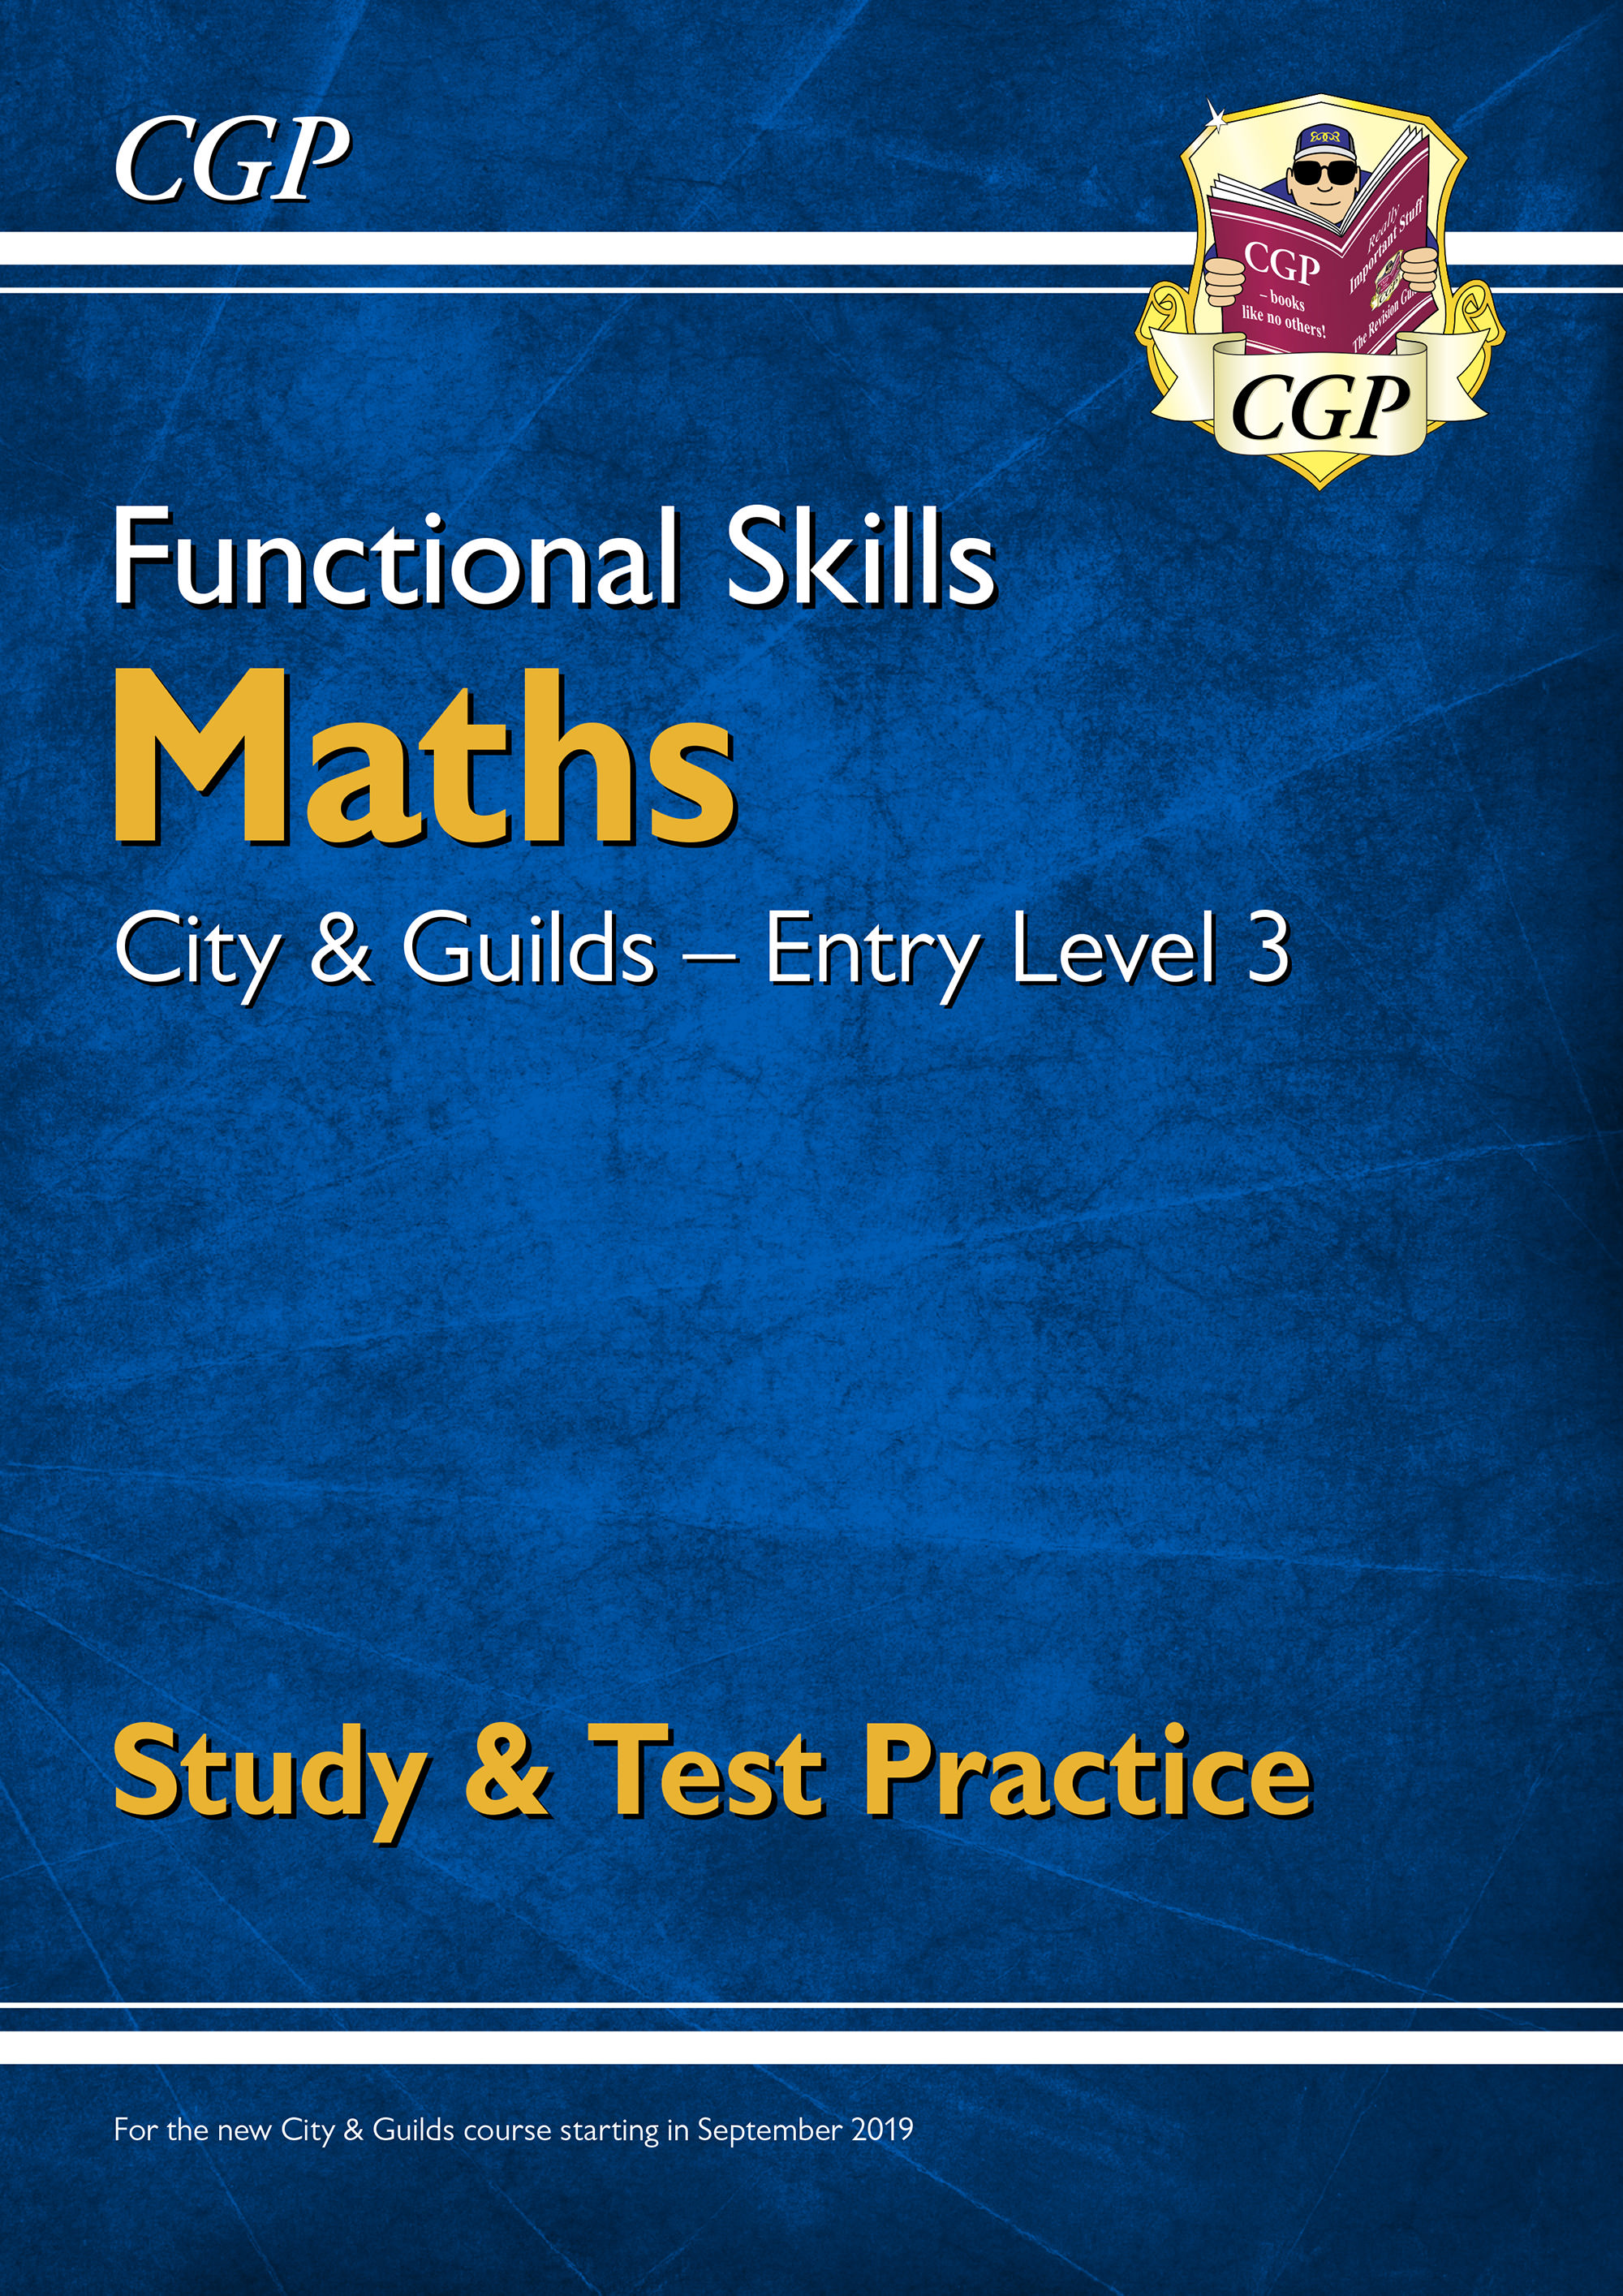 M3CGSRA1D - Functional Skills Maths: City & Guilds Entry Level 3 -Study & Test Practice (for 2021 &